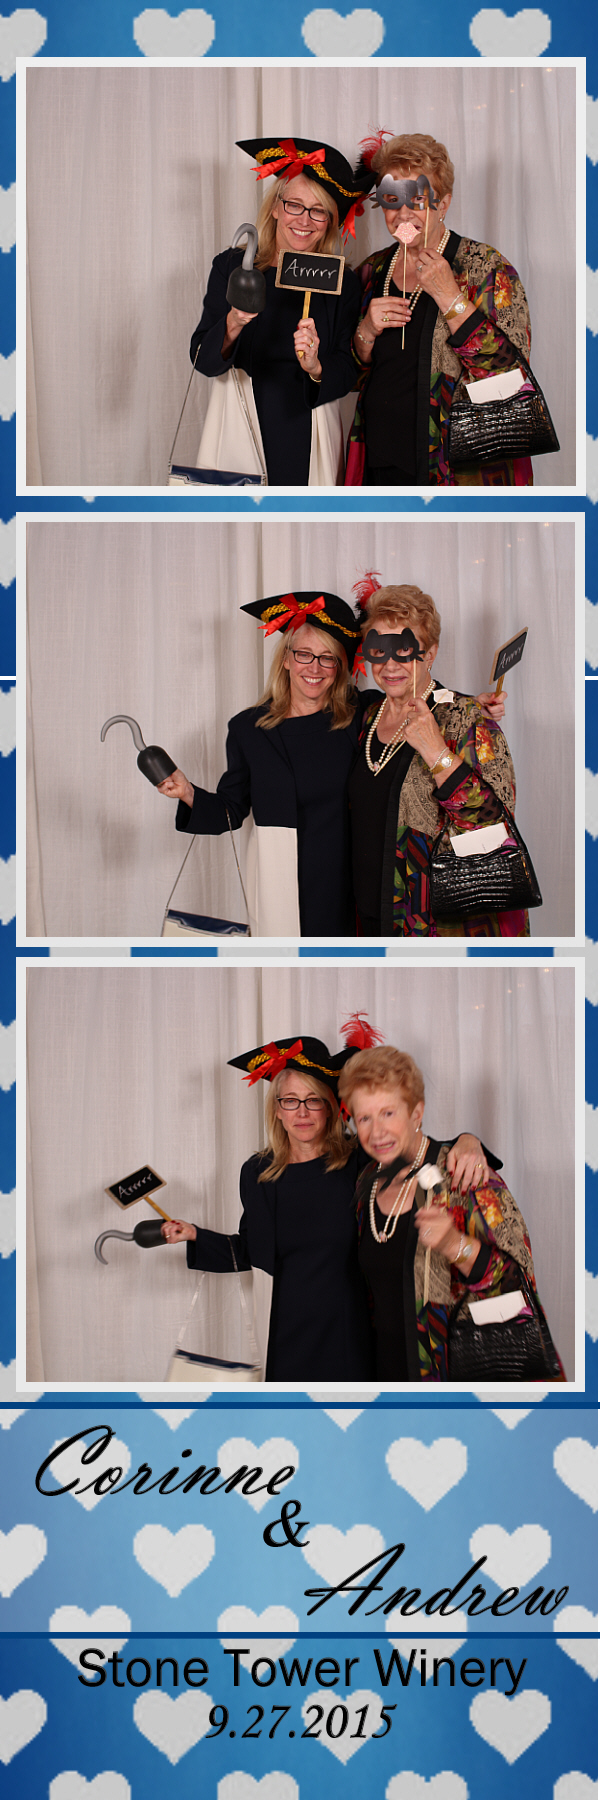 Guest House Events Photo Booth C&A (4).jpg